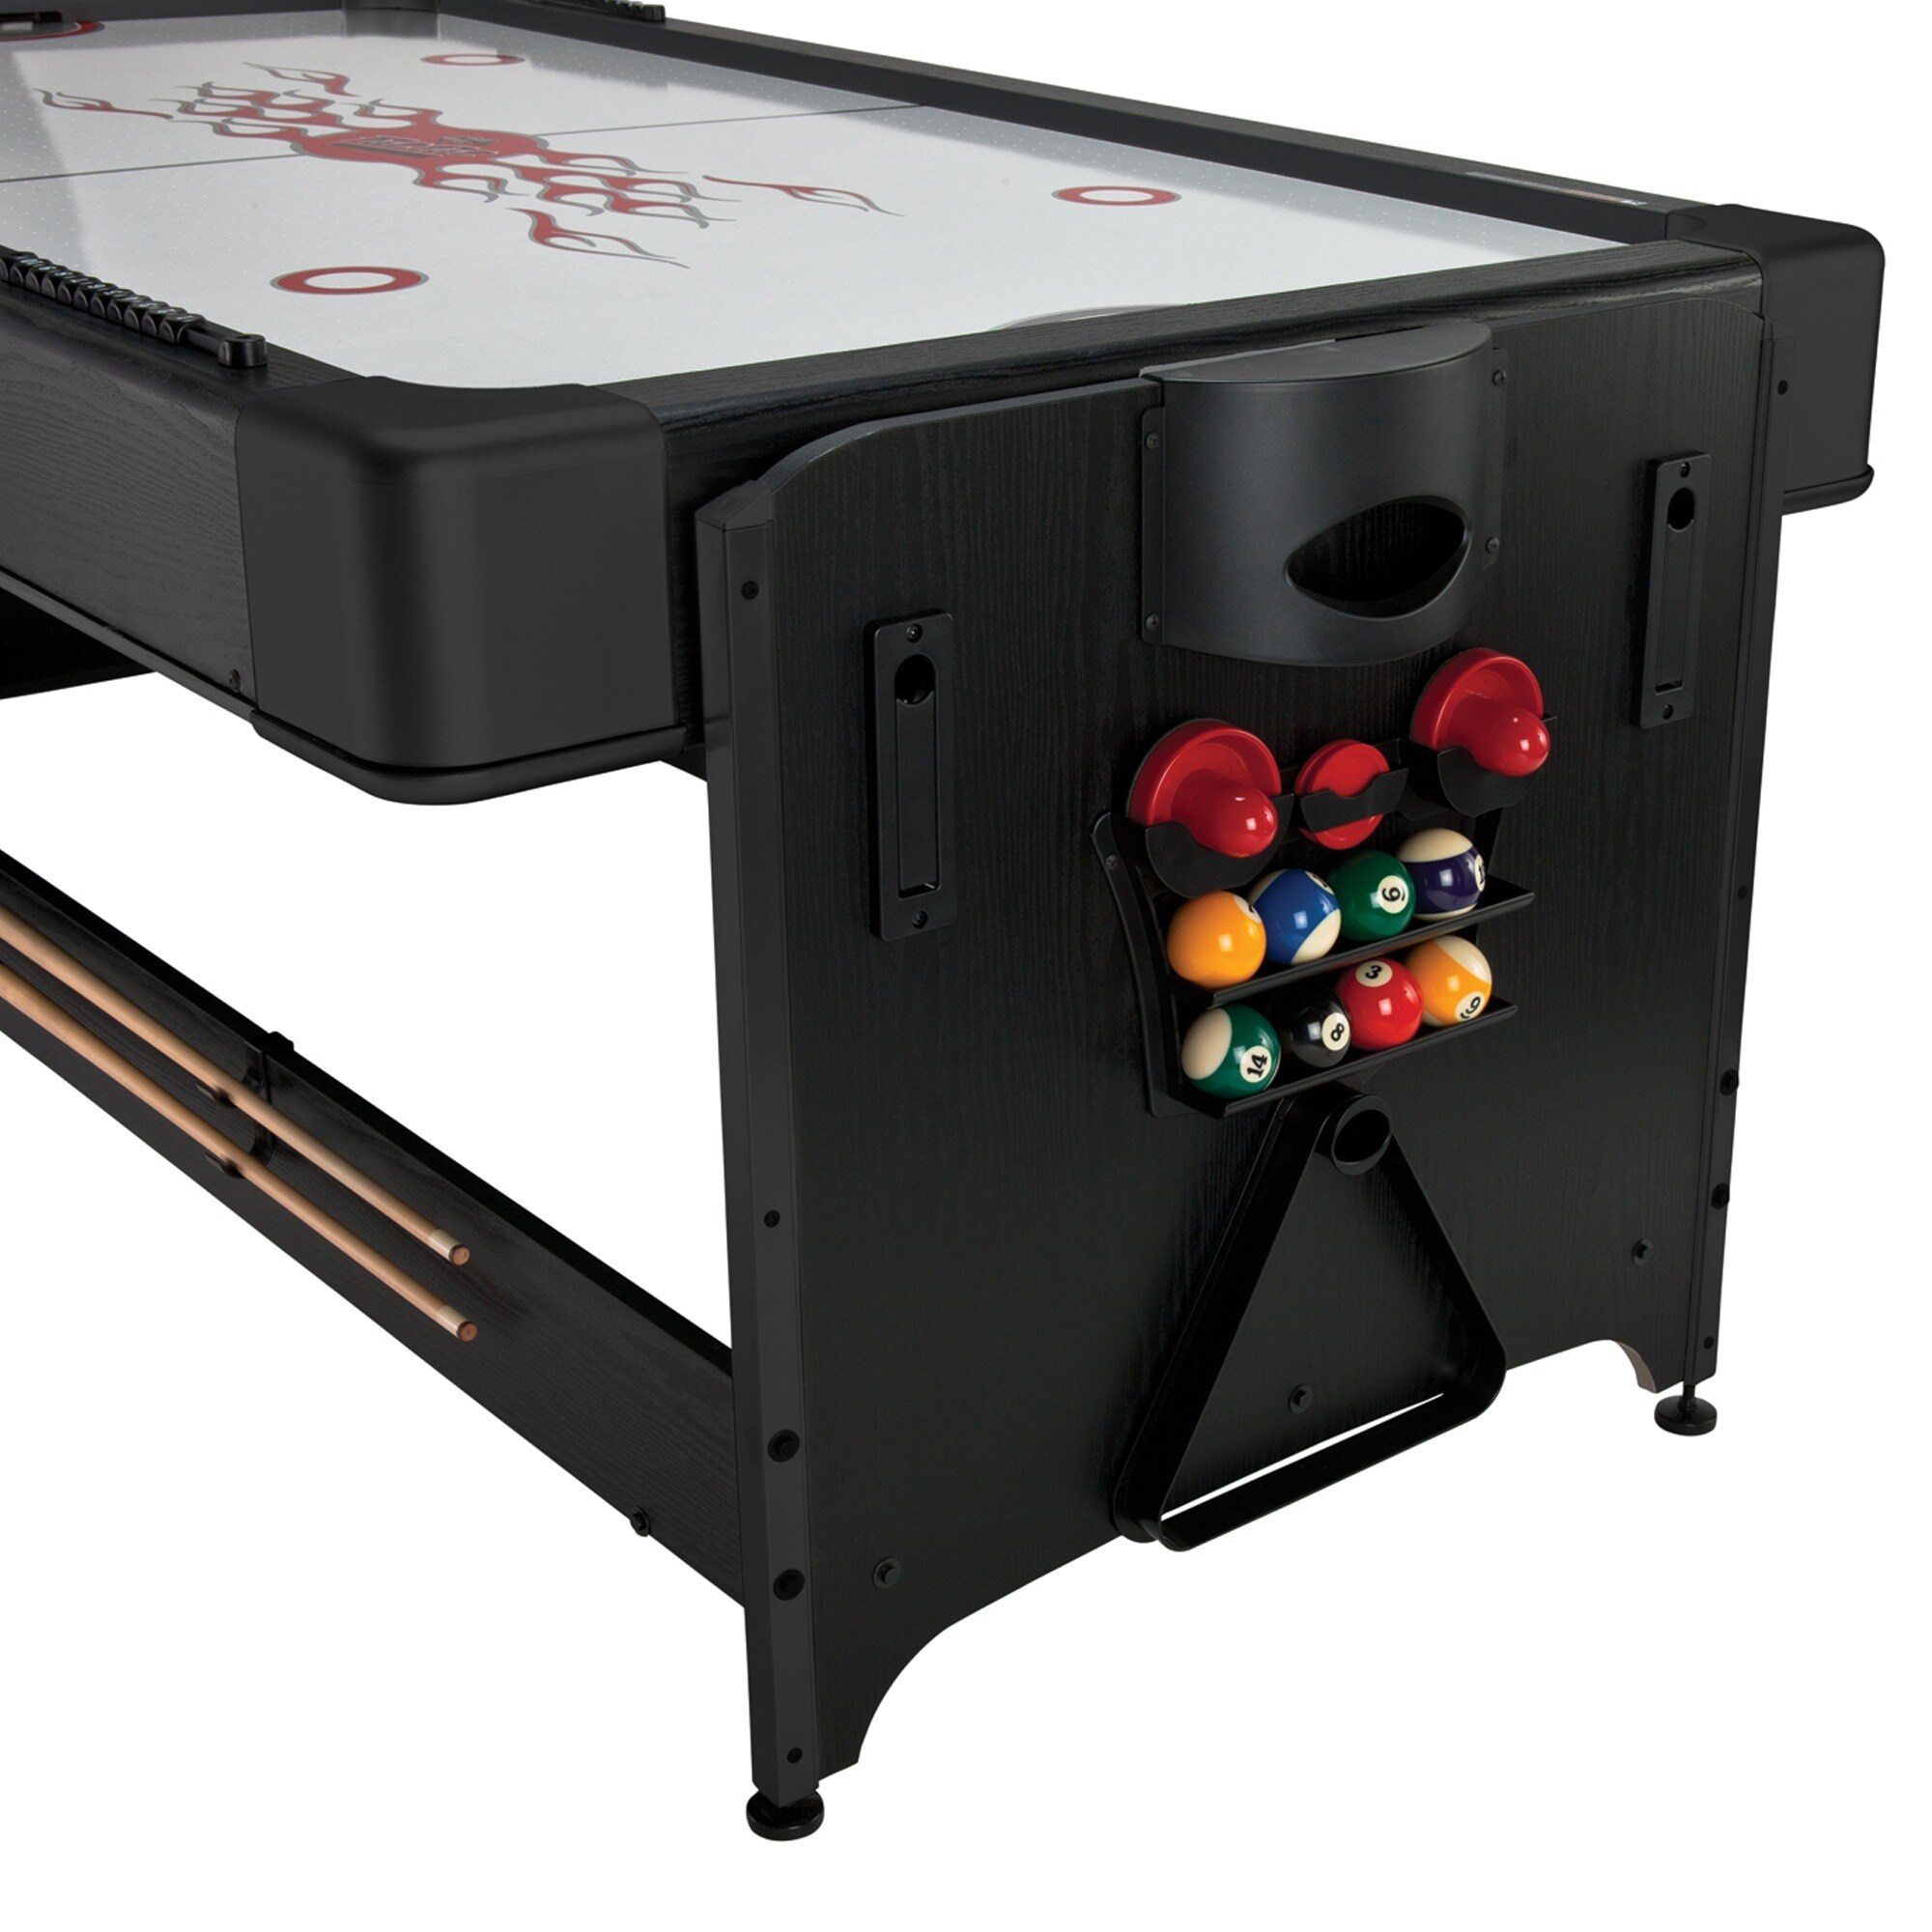 Amazing Fat Cat Air Hockey Table #19 - Fat Cat 64-1010 Original 2-in-1 7-foot Pockey Game Table (Billiards And Air  Hockey) - Black - Free Shipping Today - Overstock - 18326519